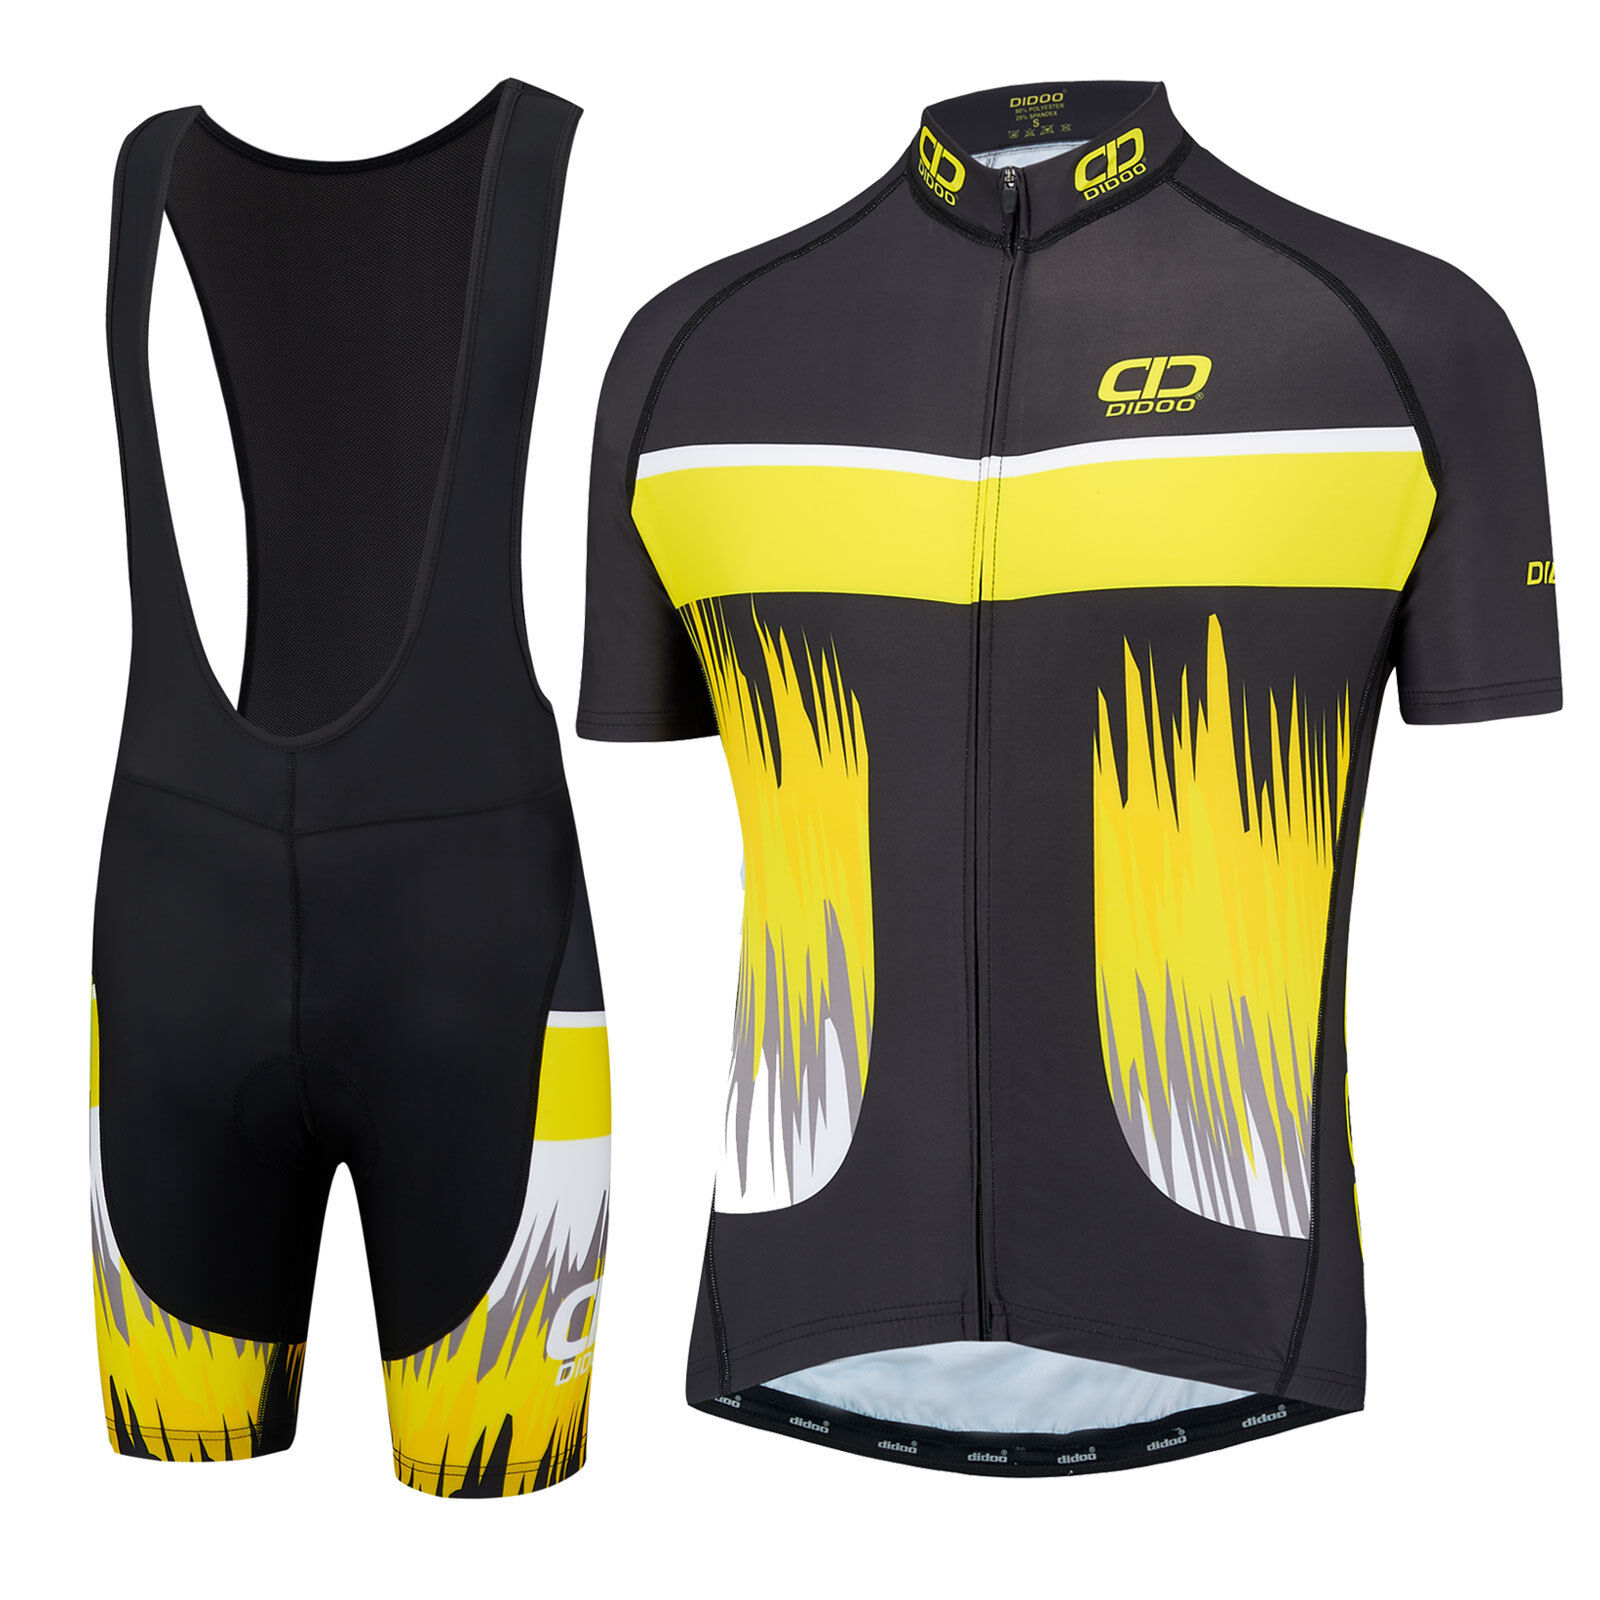 Didoo Half Sleeve Cycling Jersey and Breathable Padded Bib Short Set Team Racing